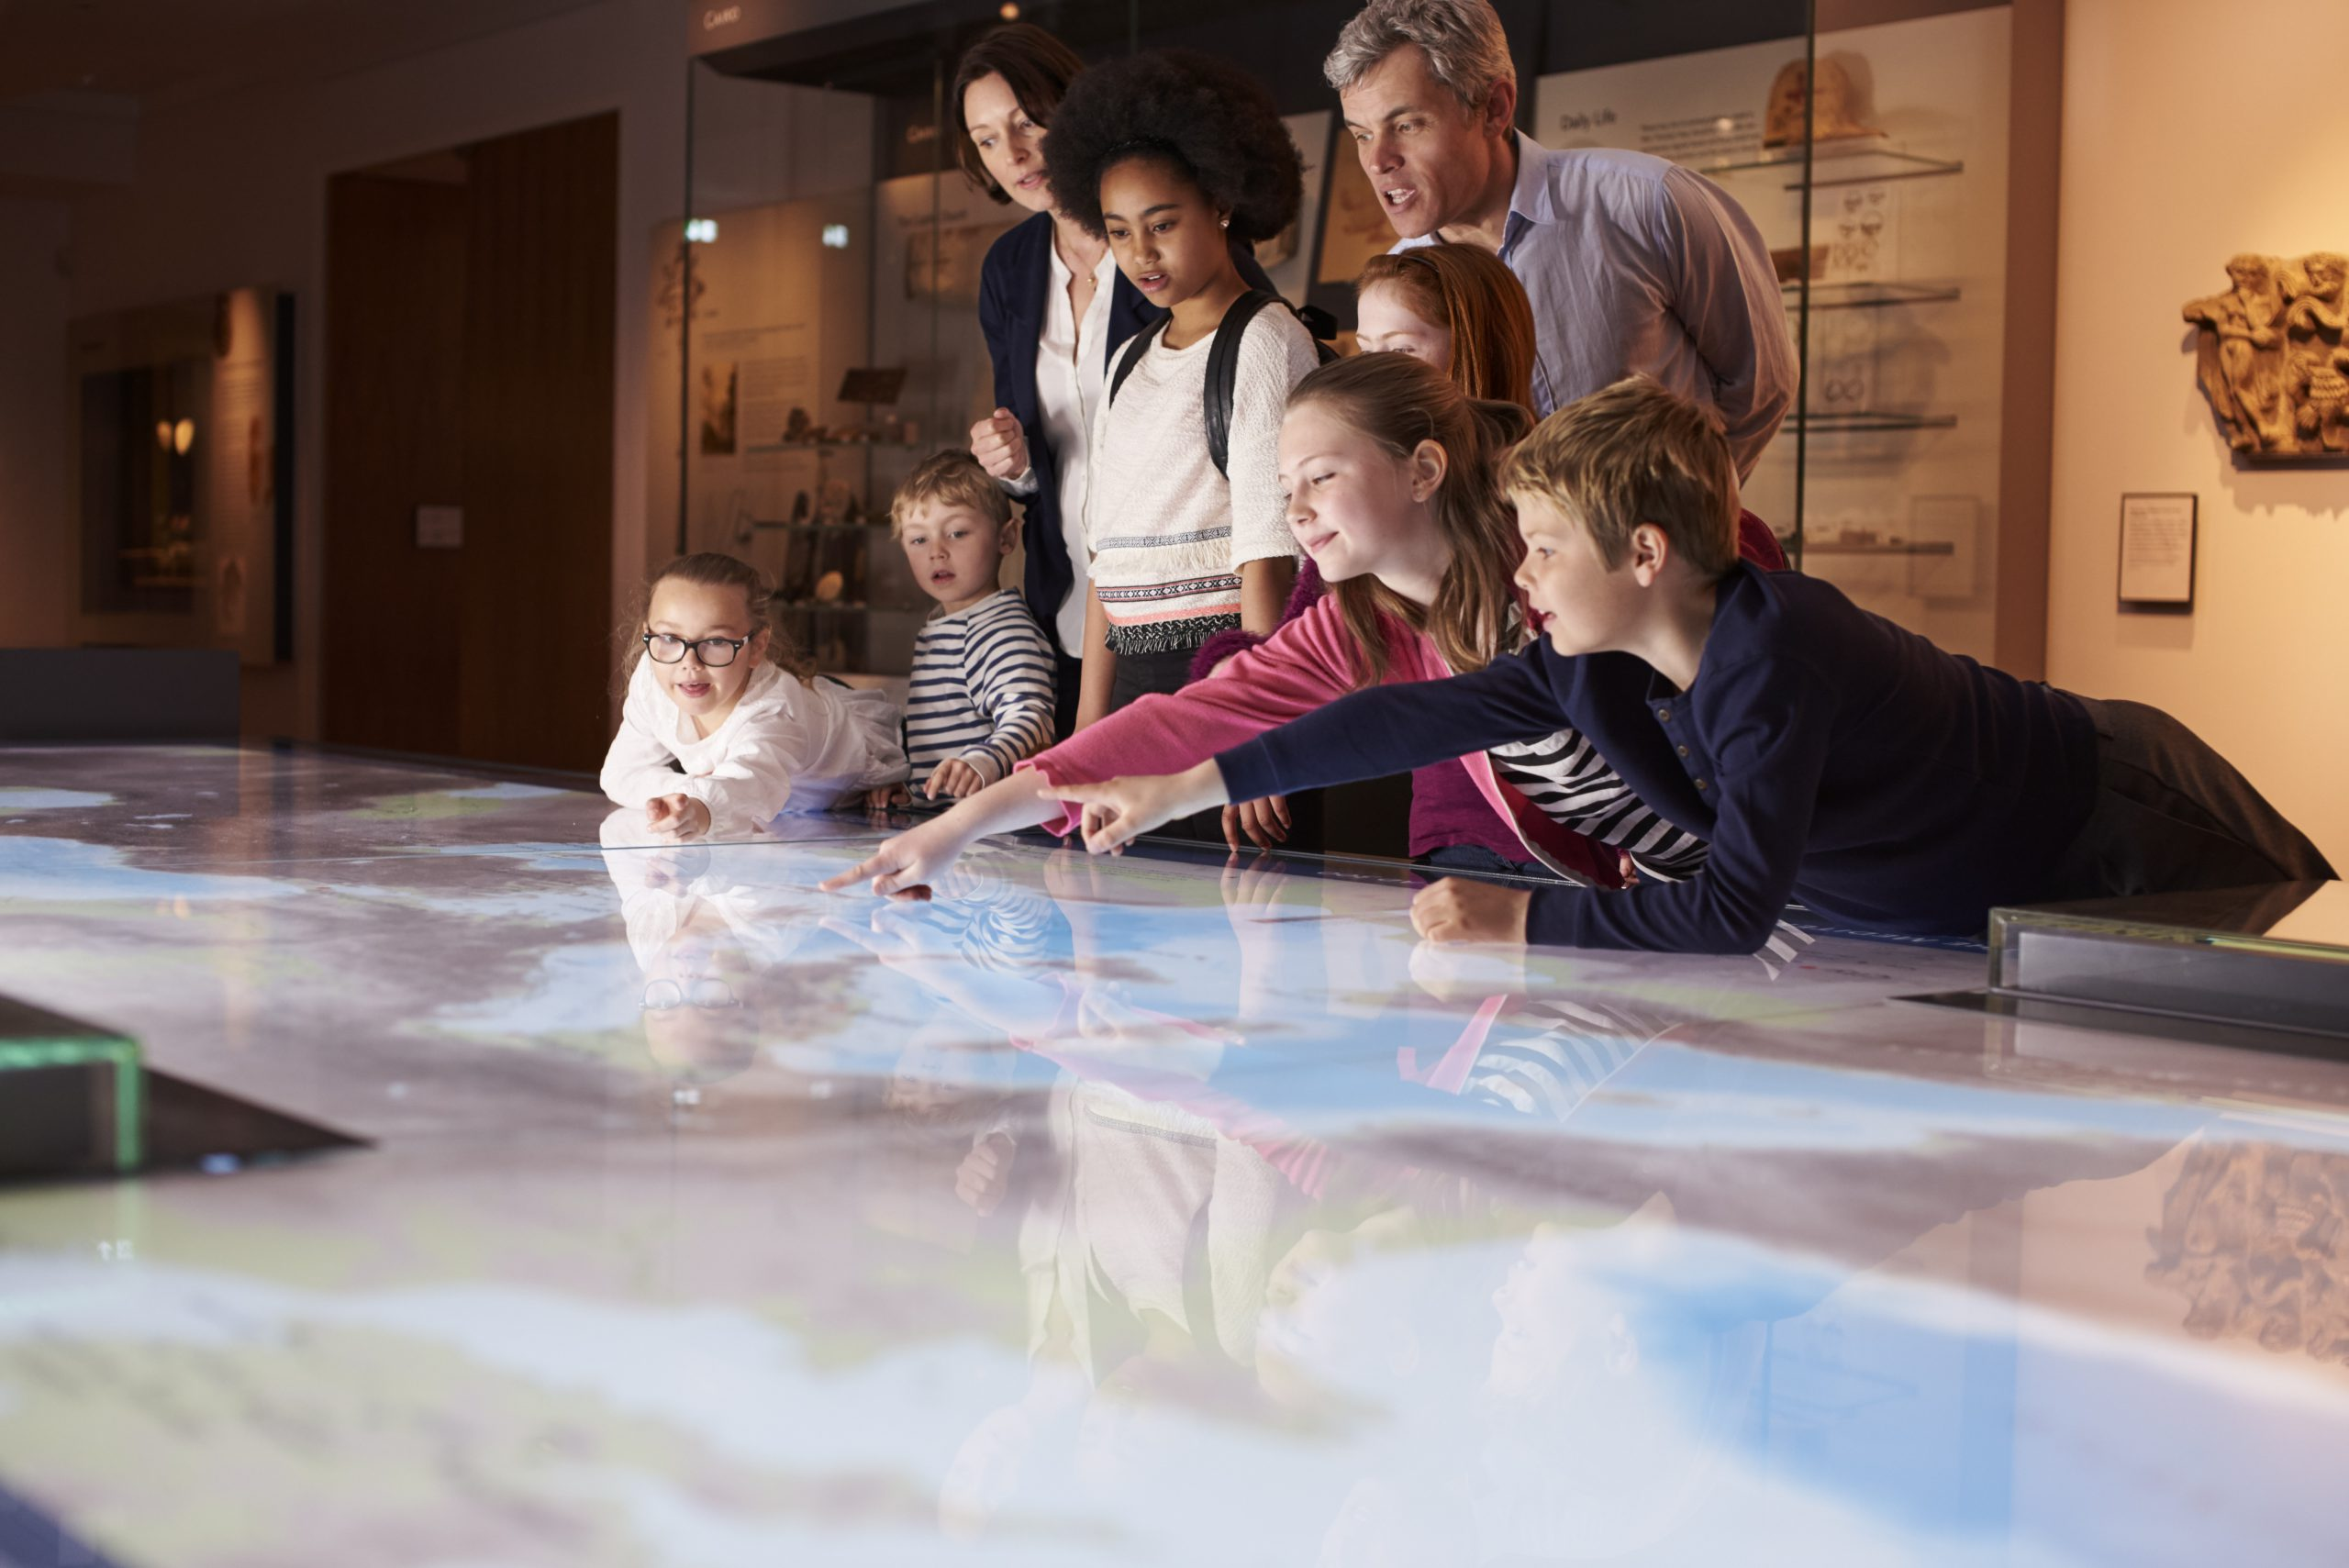 Group of adults and children looking at an interactive table. Three children are leaning over the table and pointing.